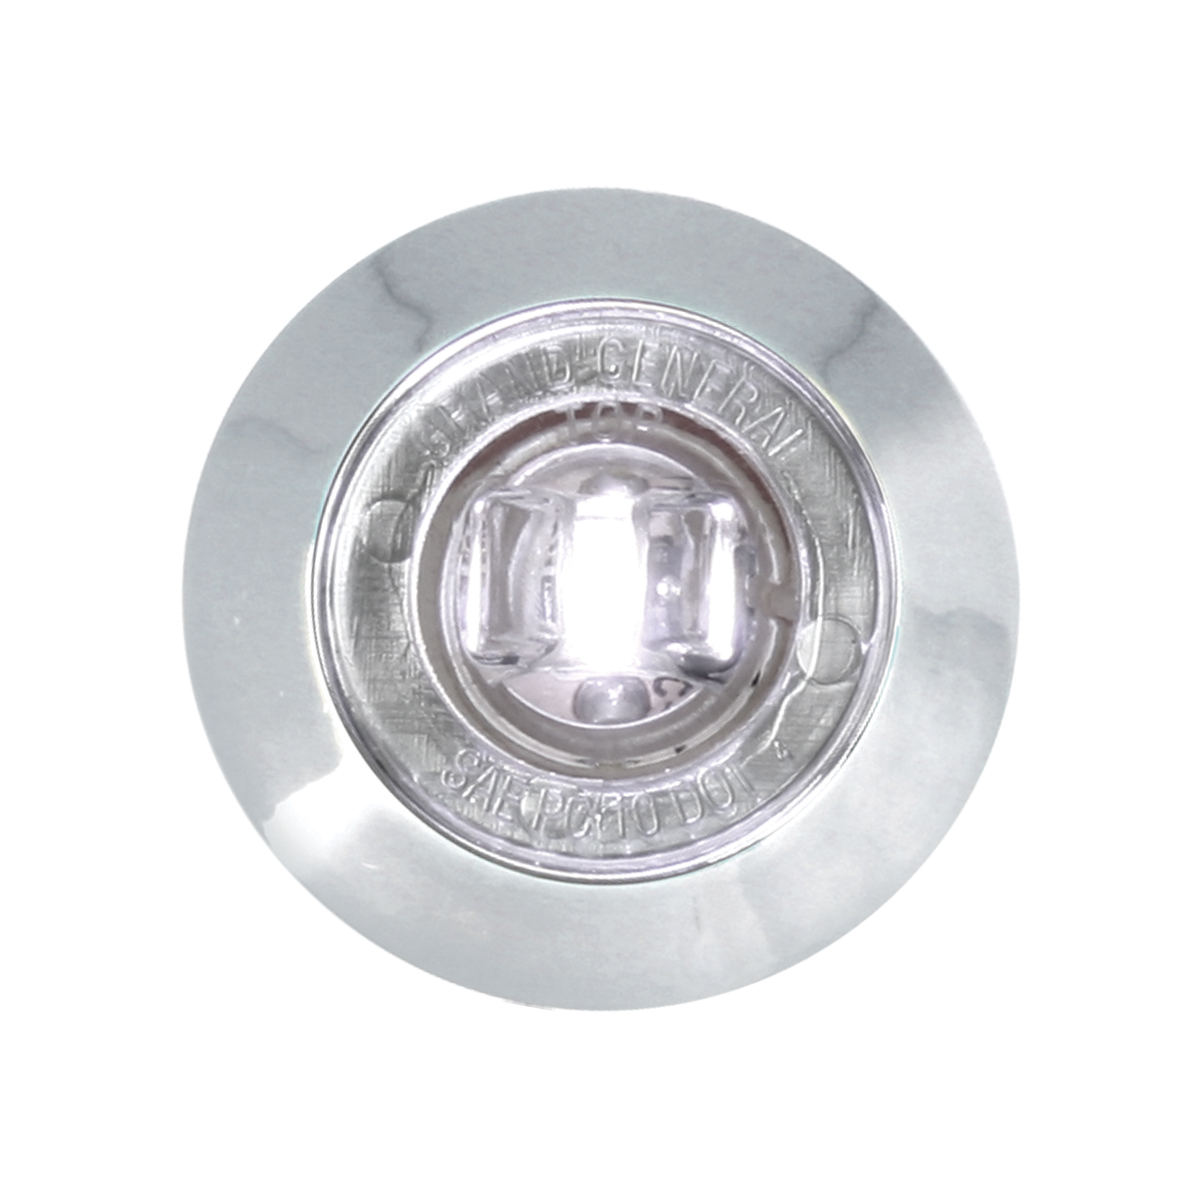 "75224 1-1/4"" Dia. Dual Function LED Light with Chrome Plastic Bezel and Nut"